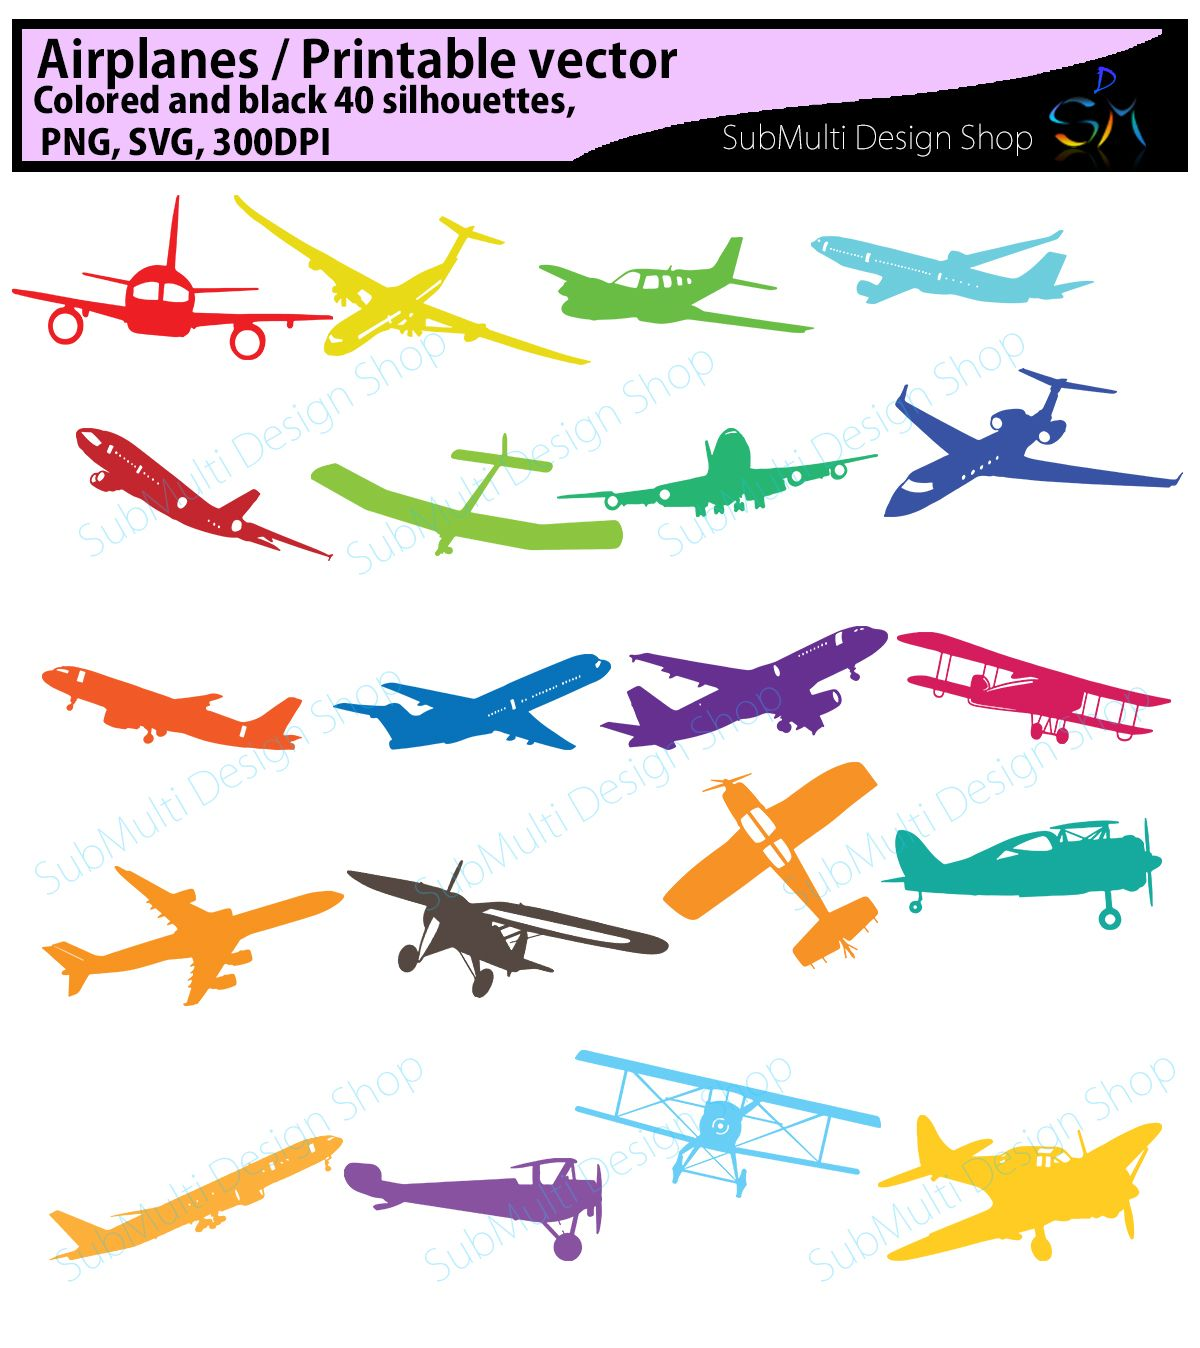 small resolution of airplane clipart svg airplane airplane clipart airplane craft airplane graphics airplane silhouette cricut cut files design fly logo minimal